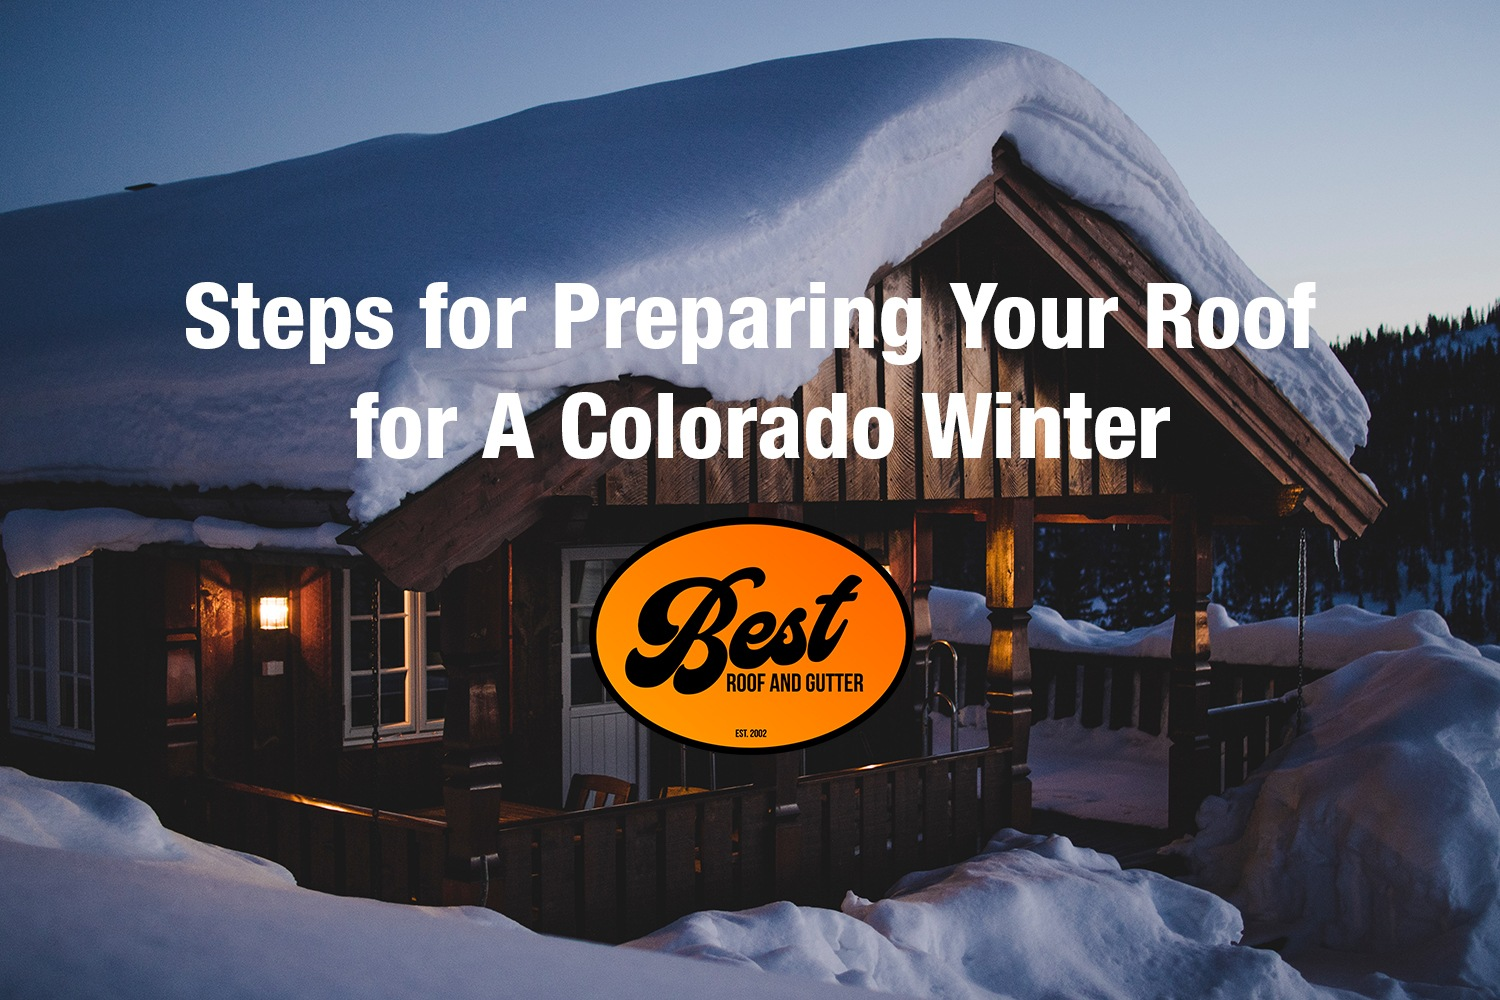 Steps for Preparing Your Roof for A Colorado Winter